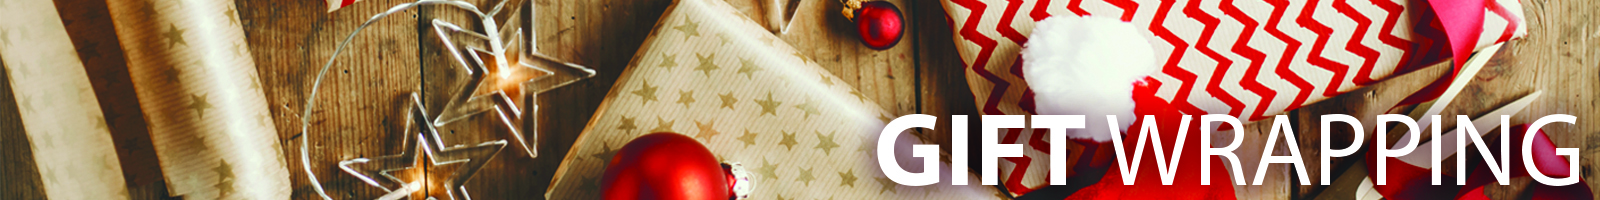 Gift Wrapping Header